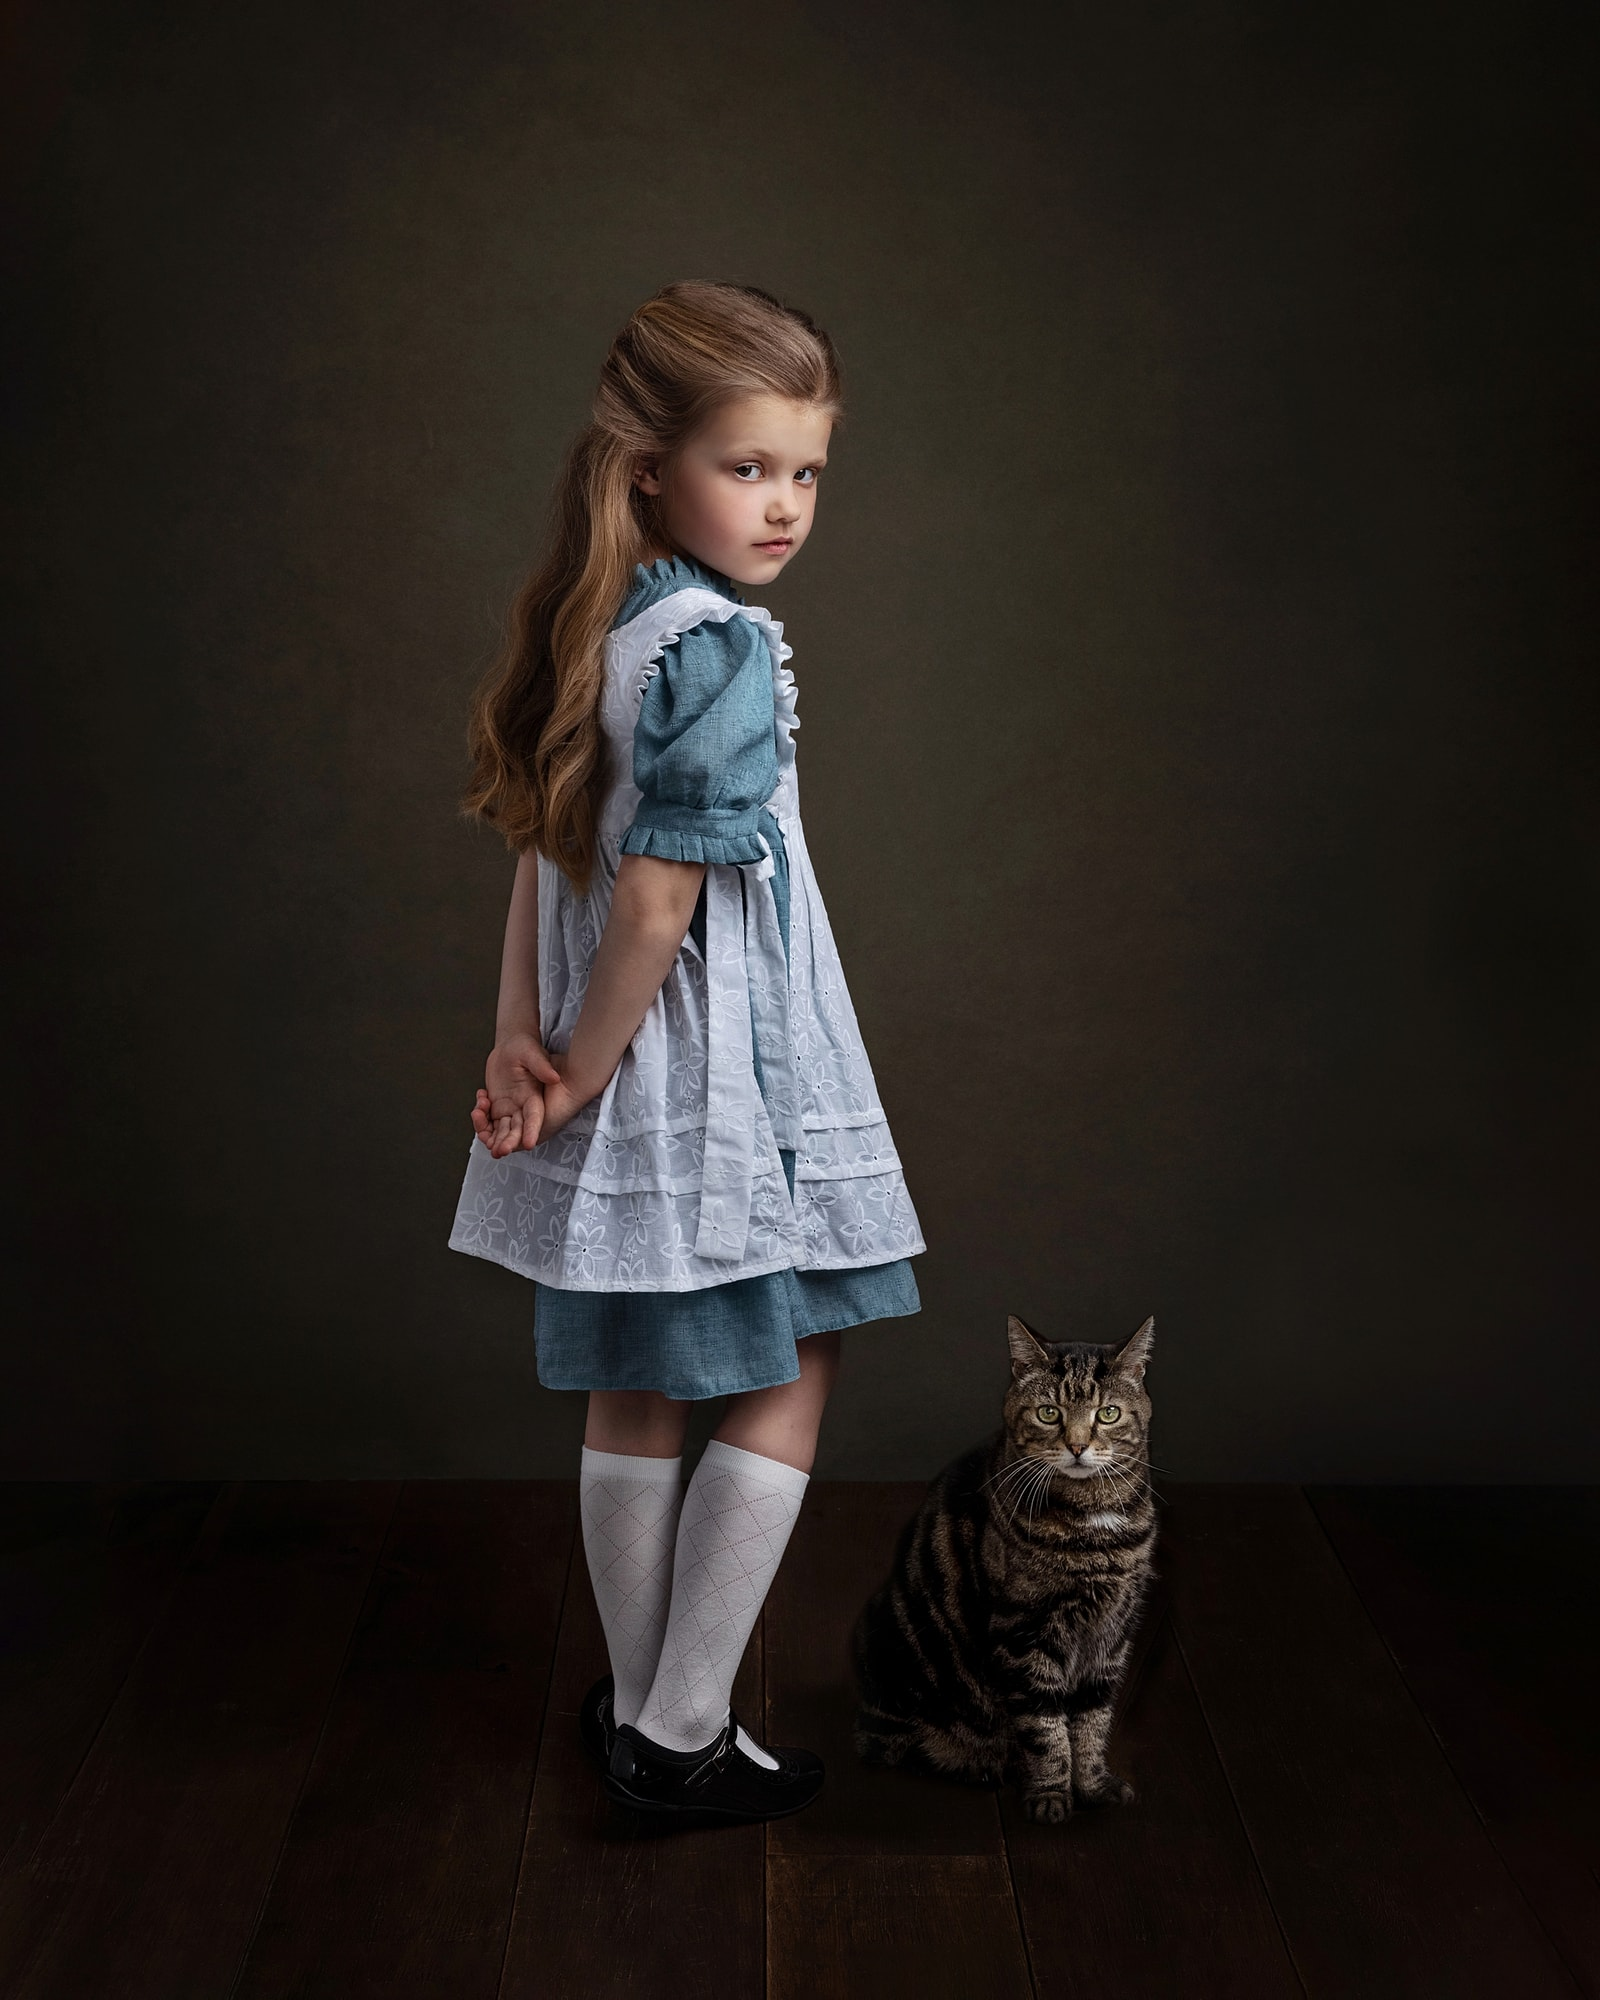 Little girl wearing a blue dress with white apron stands against a dark background with her cat during fine art photoshoot at Suffolk Studio